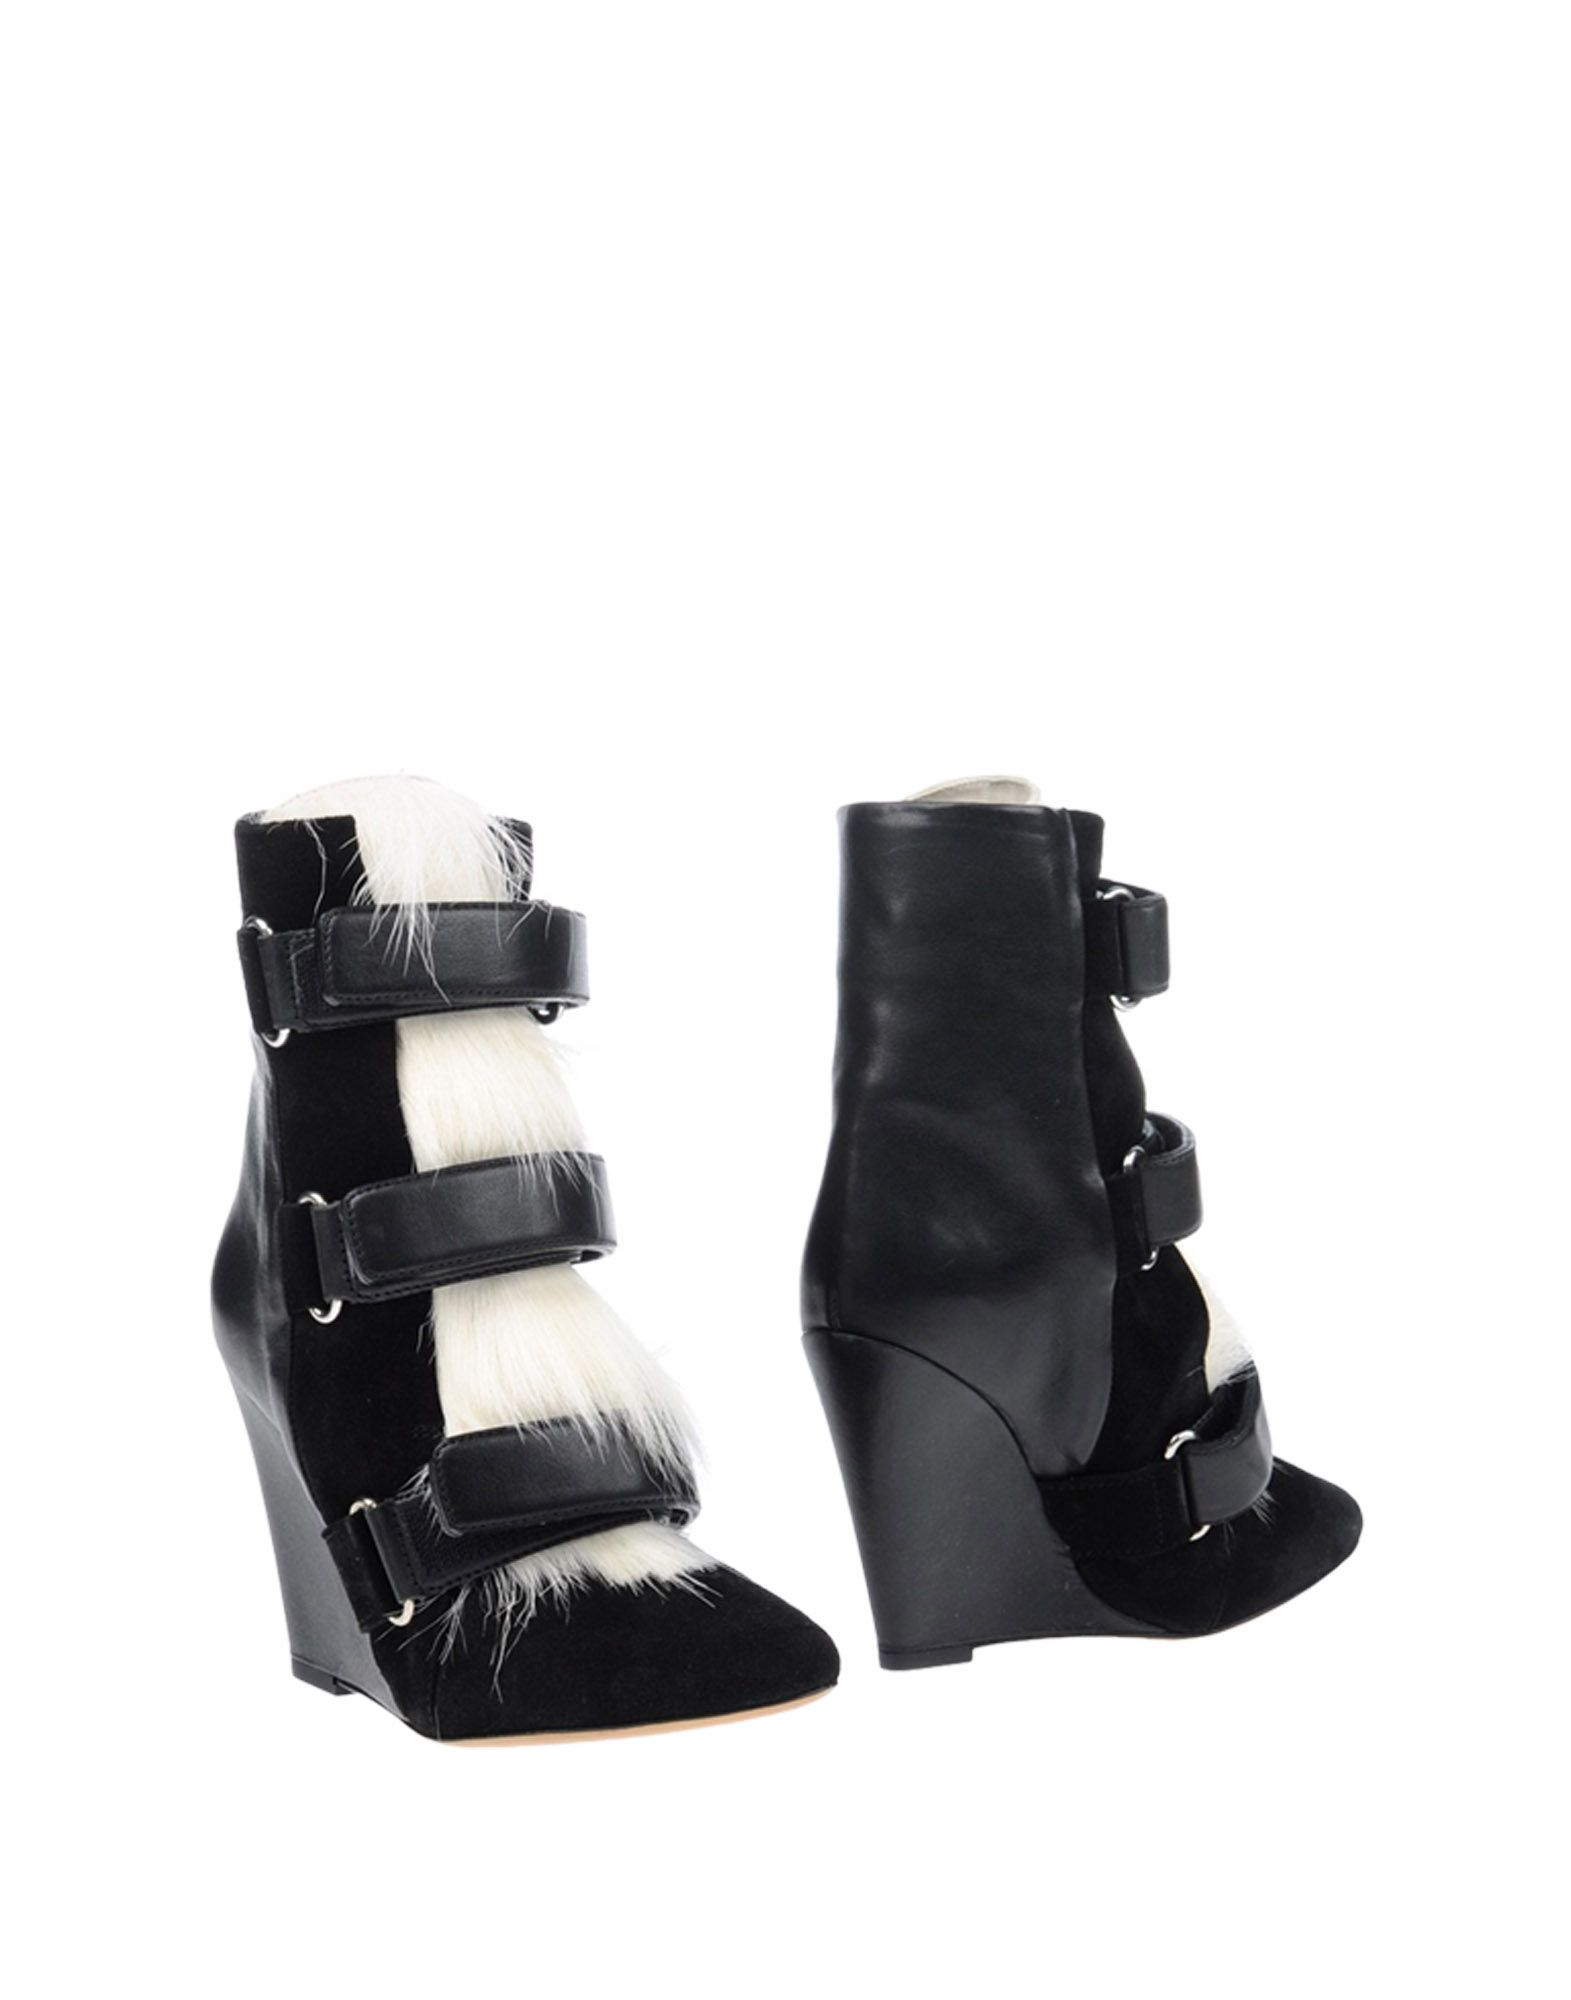 Bottine Isabel Marant Femme - Bottines Isabel Marant sur